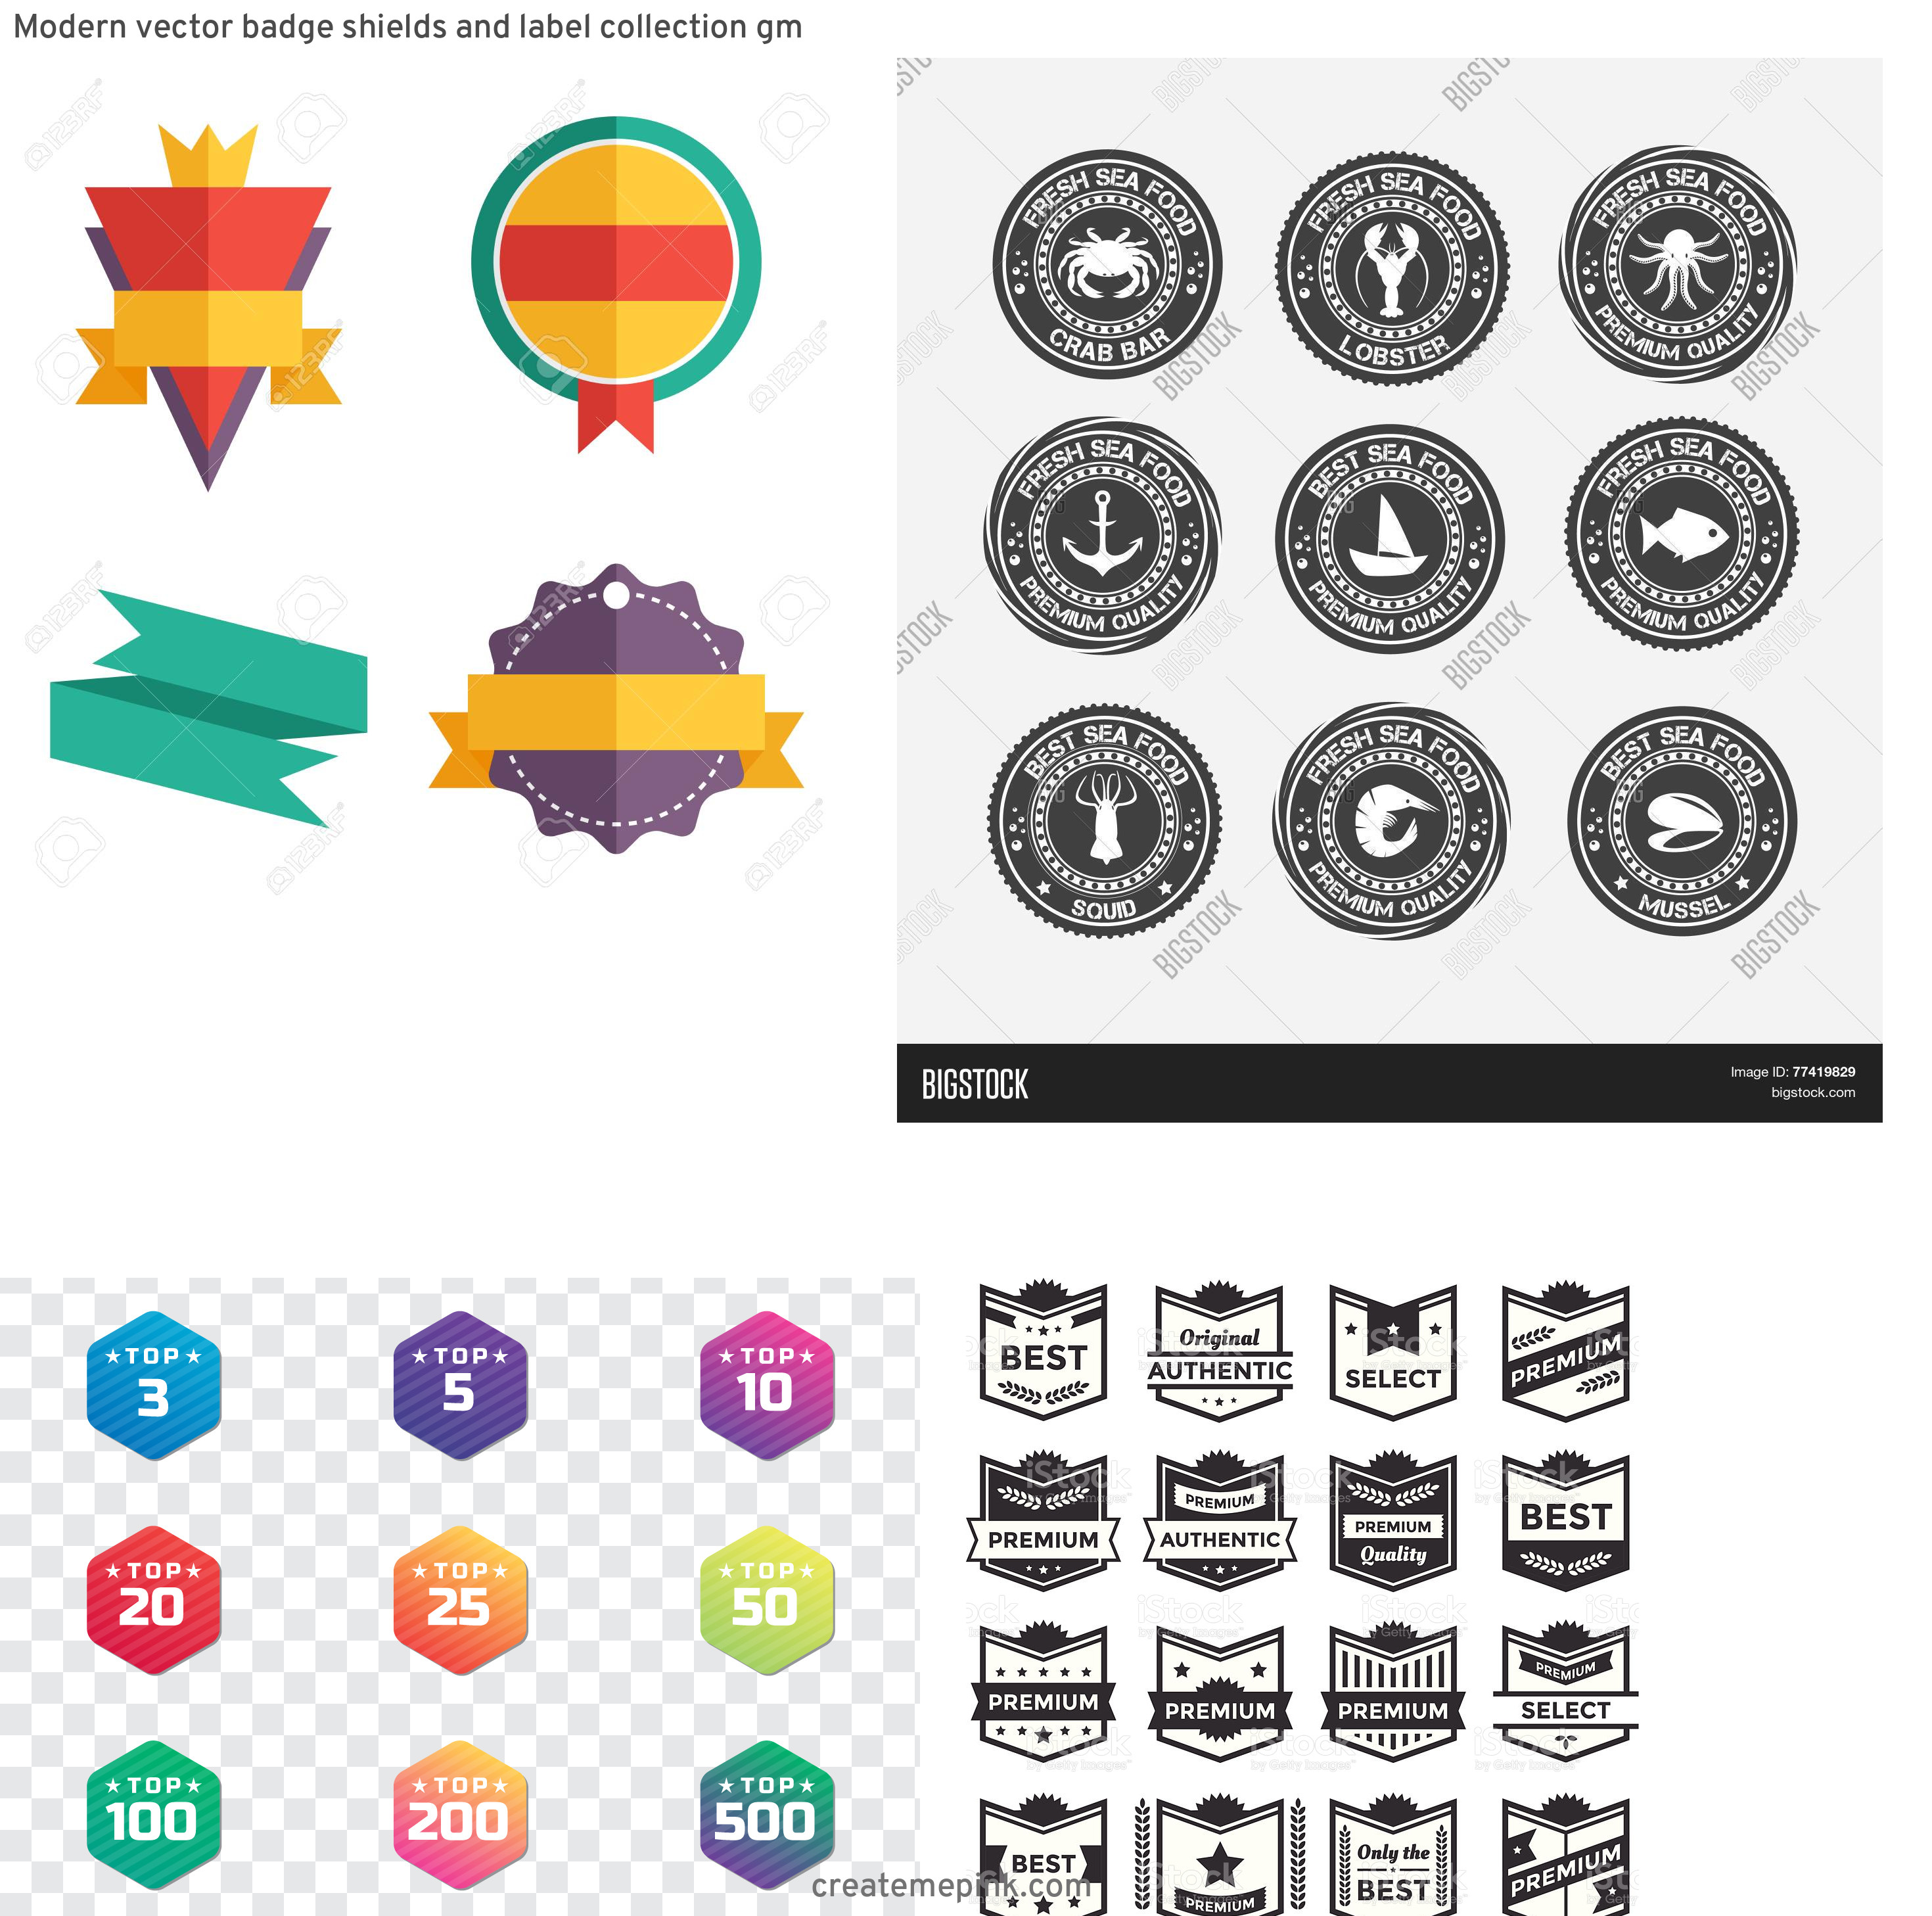 Modern Vector Badges: Modern Vector Badge Shields And Label Collection Gm